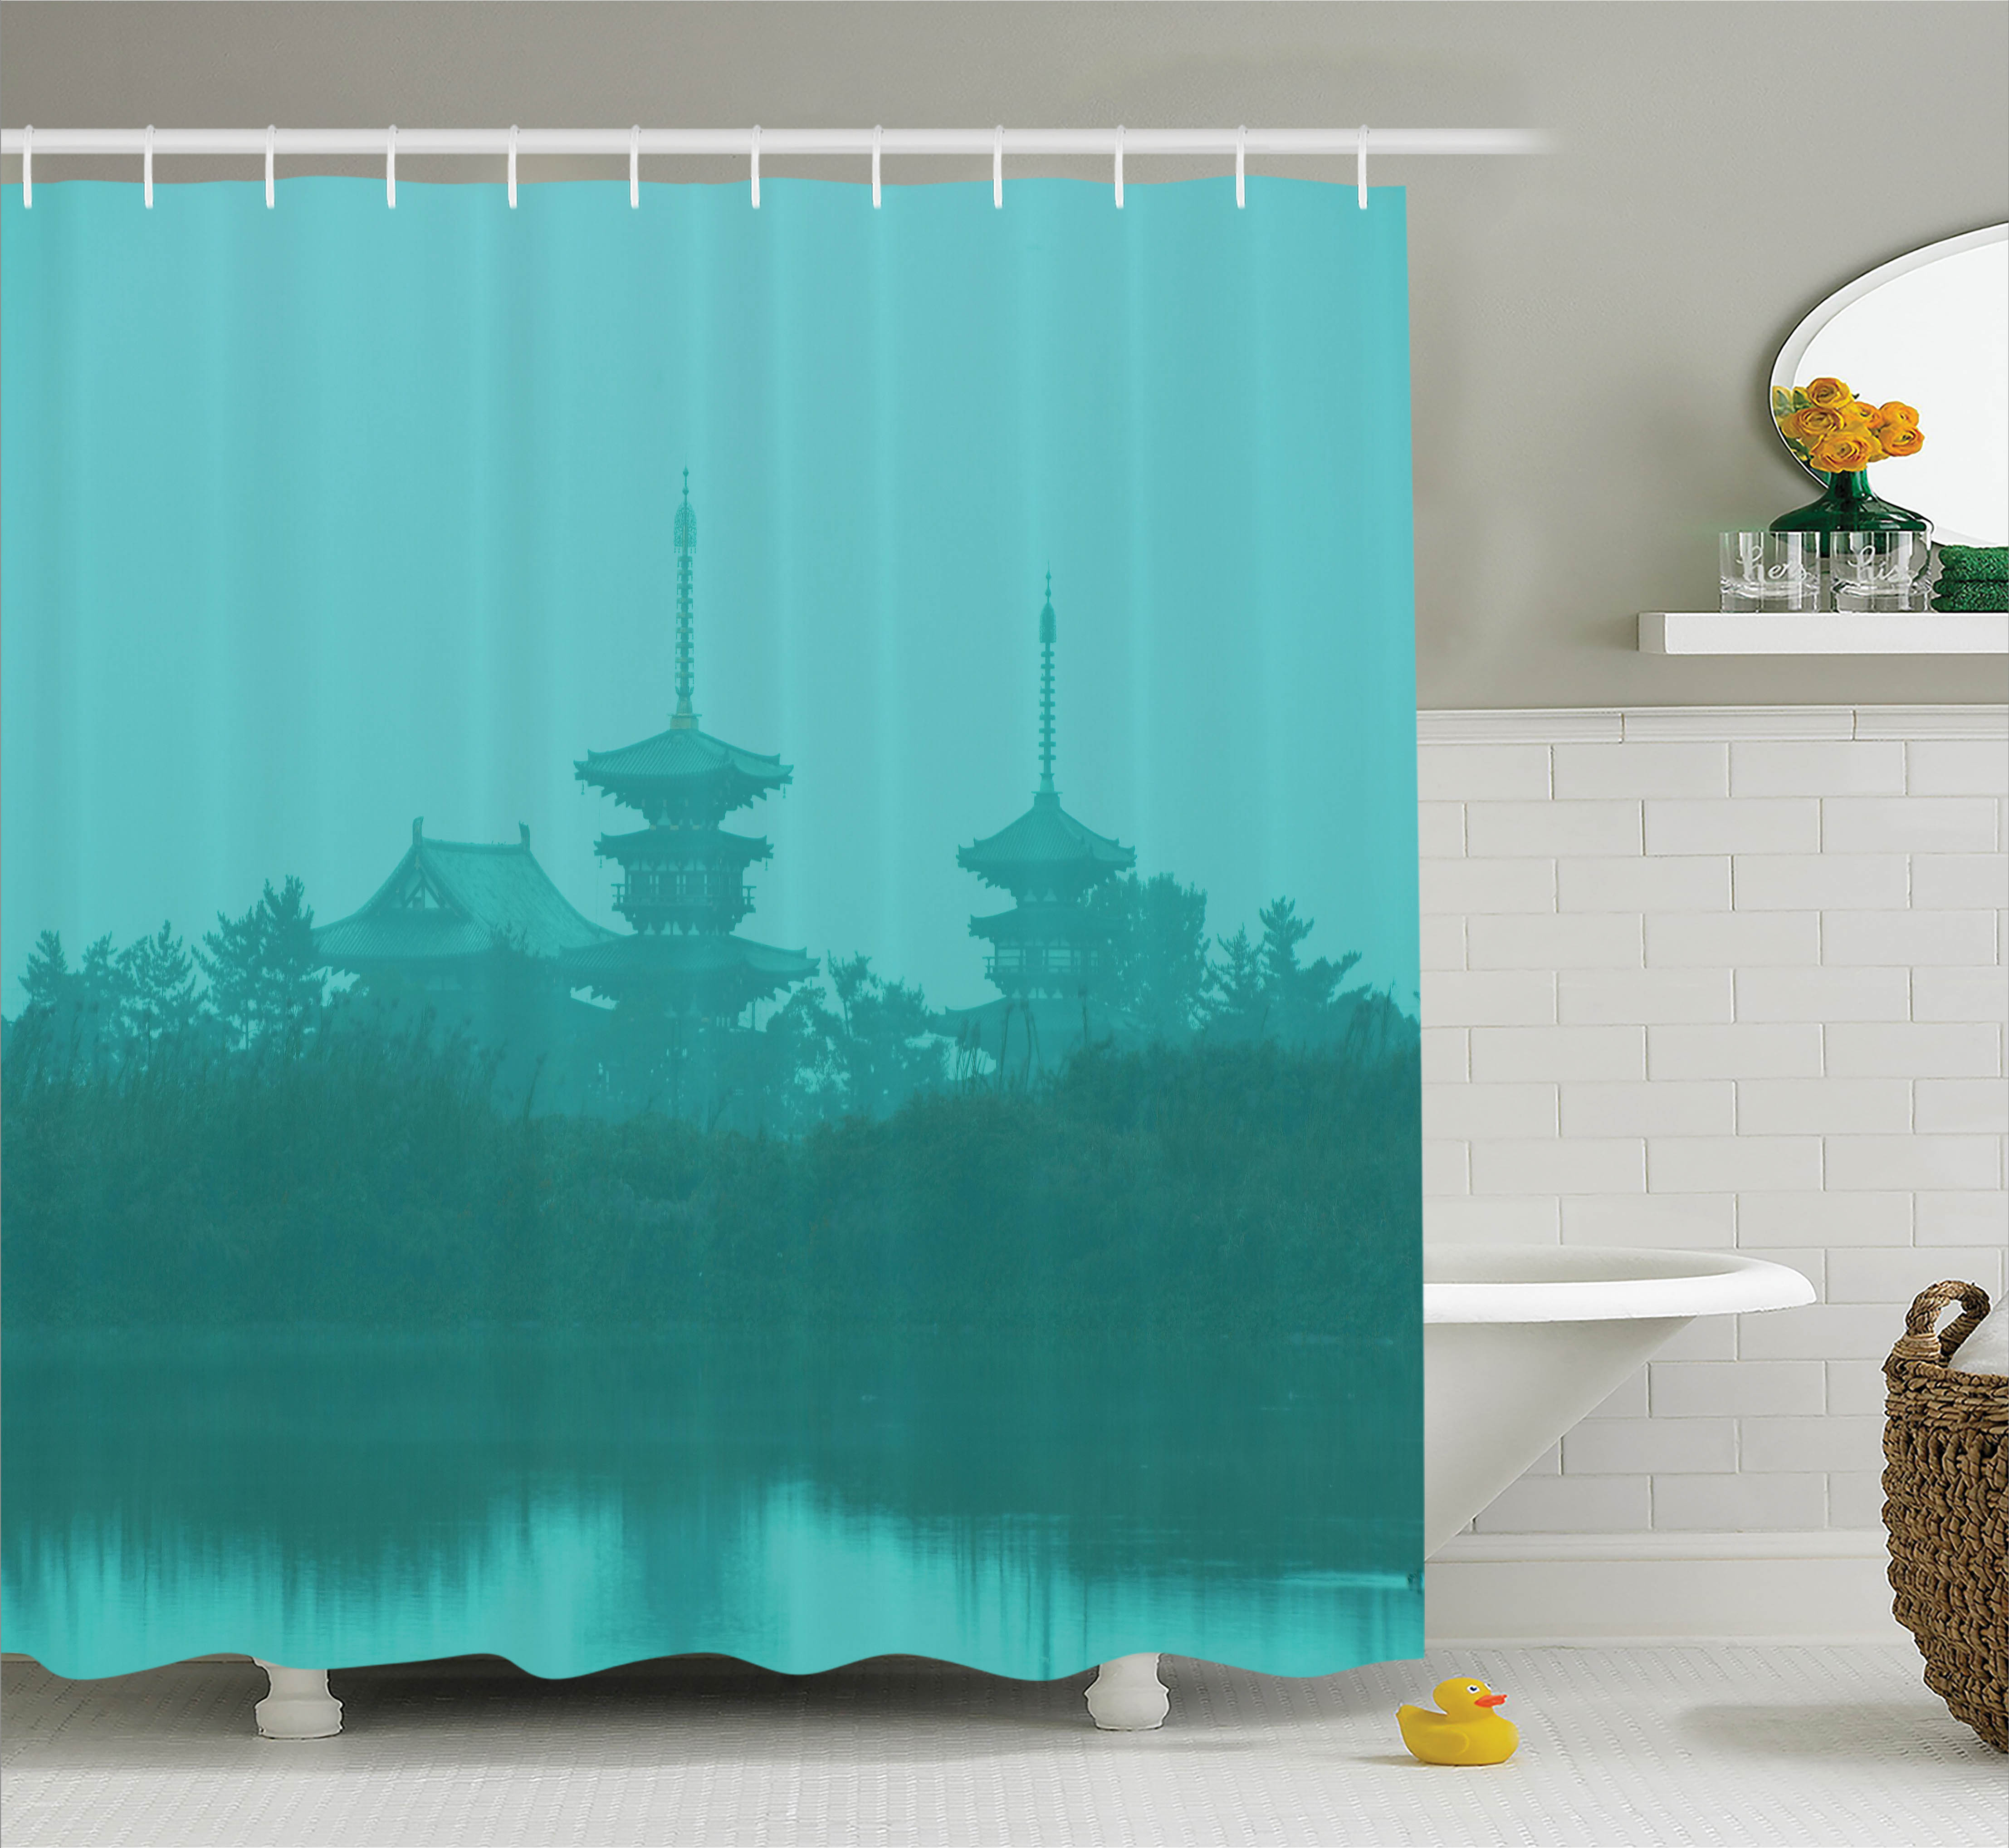 Turquoise Shower Curtain Set, Various Temples above the Sea Holy Tank in Fog Symbolic Faith Custom Pagoda Monochrome Print, Bathroom Decor, Turquoise, by Ambesonne